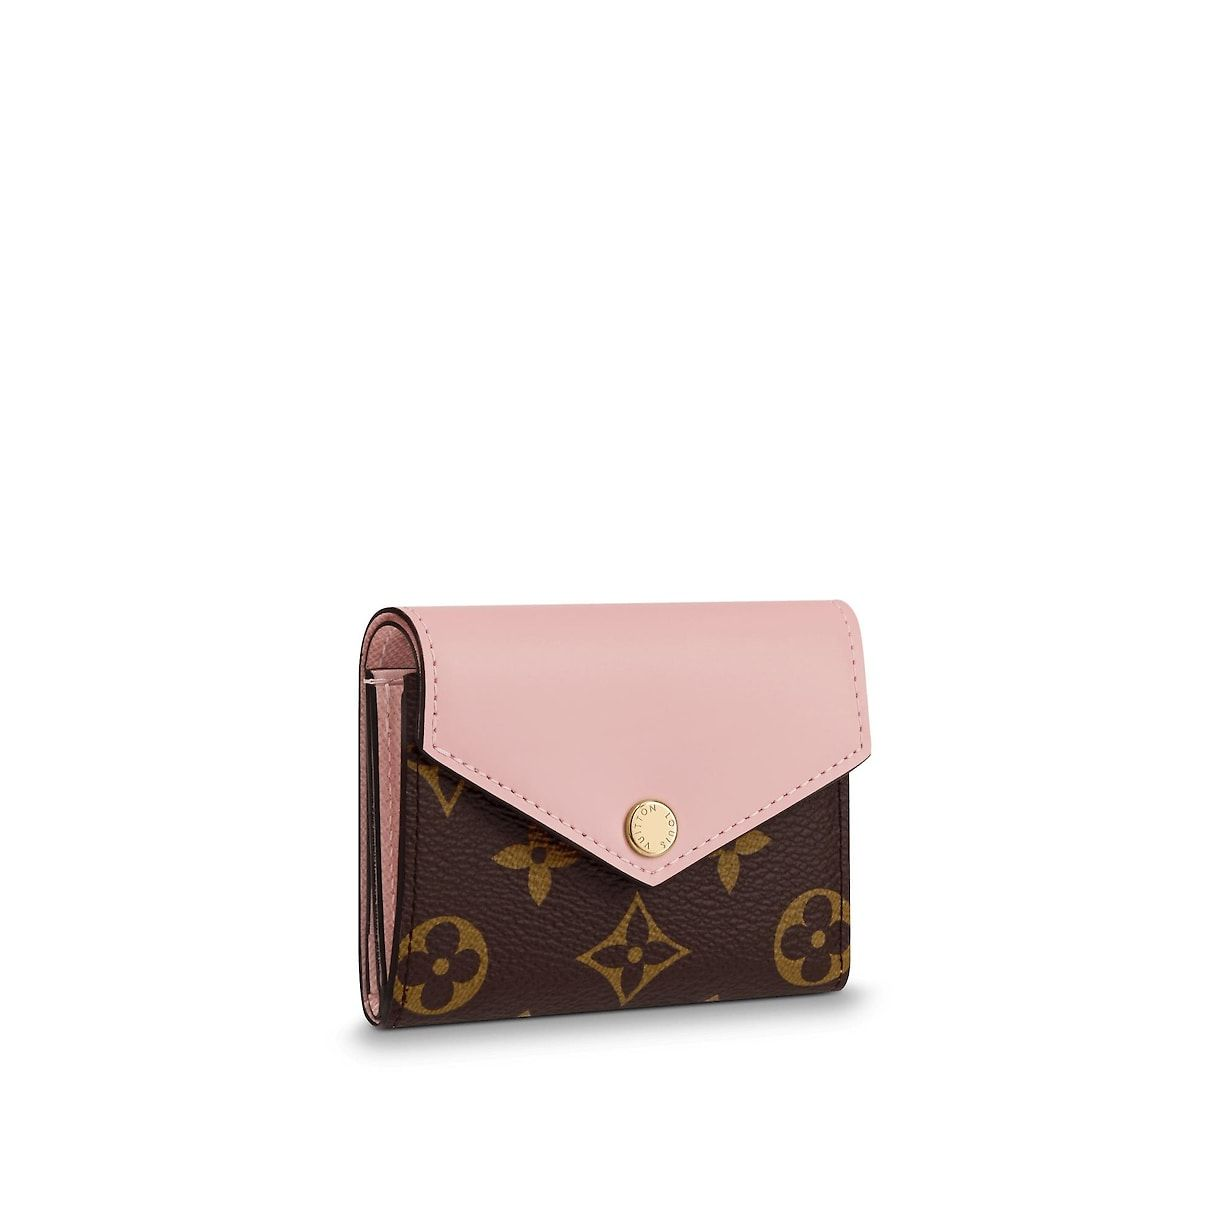 b90a41490333b View 1 - Monogram SMALL LEATHER GOODS WALLETS Zoé Wallet